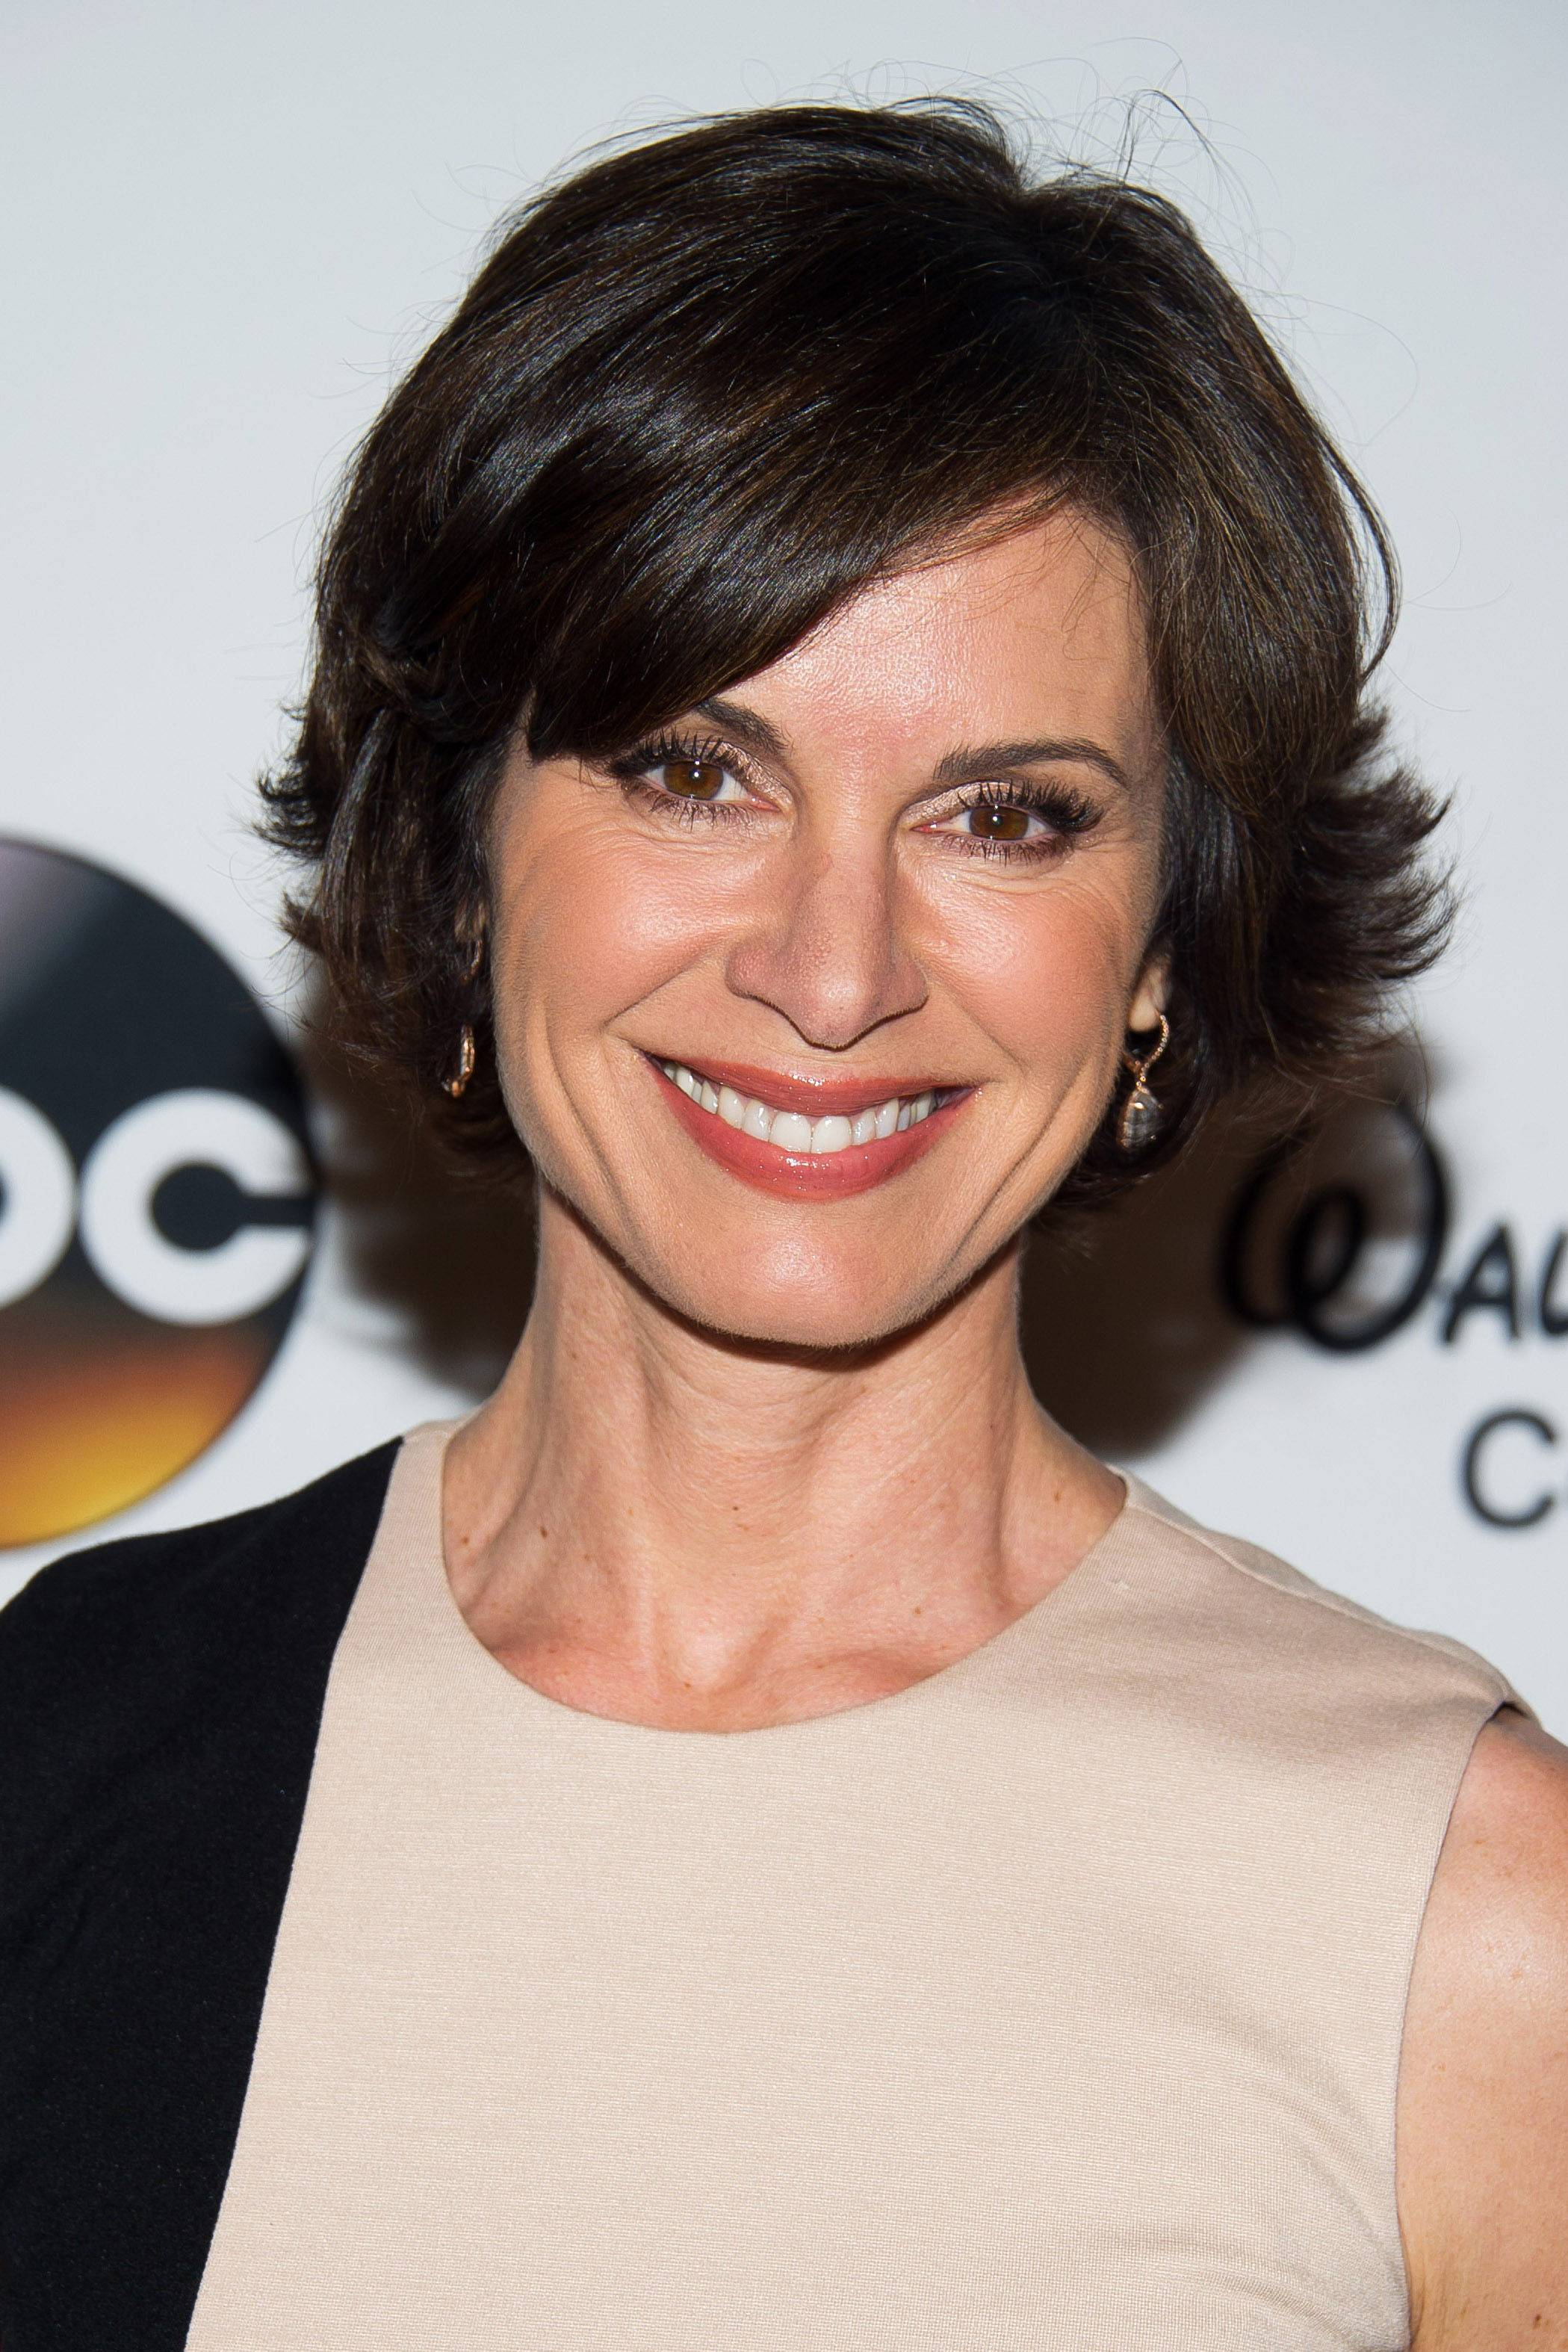 """20/20"" anchor Elizabeth Vargas said in an emailed statement Sunday that she checked into a recovery center to be treated for alcohol dependency this weekend while on vacation."